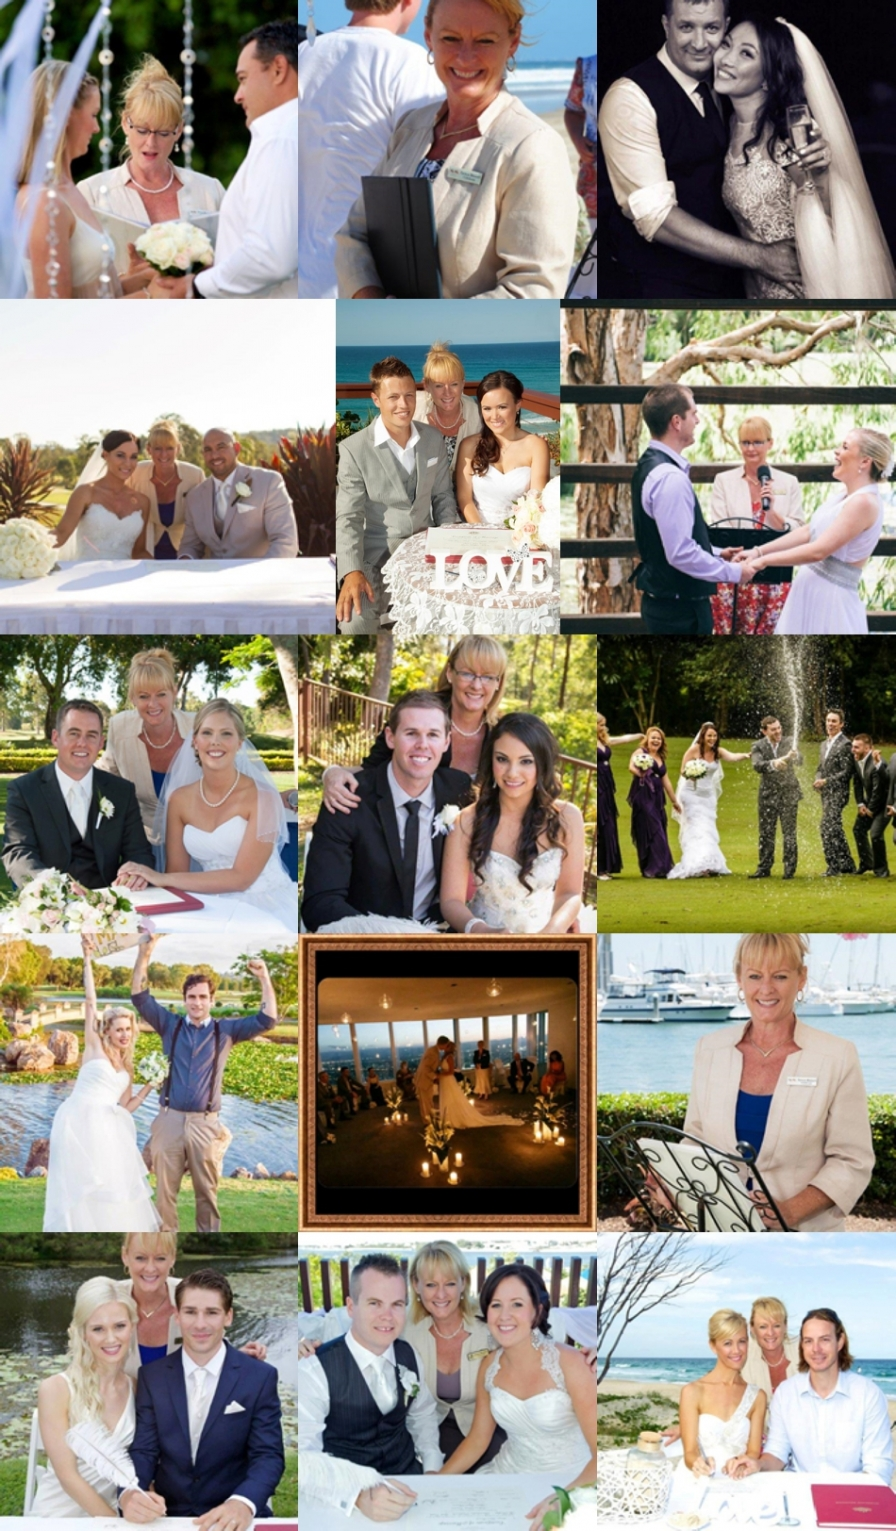 goldcoastweddingcelebrant2014pp_w896_h1531